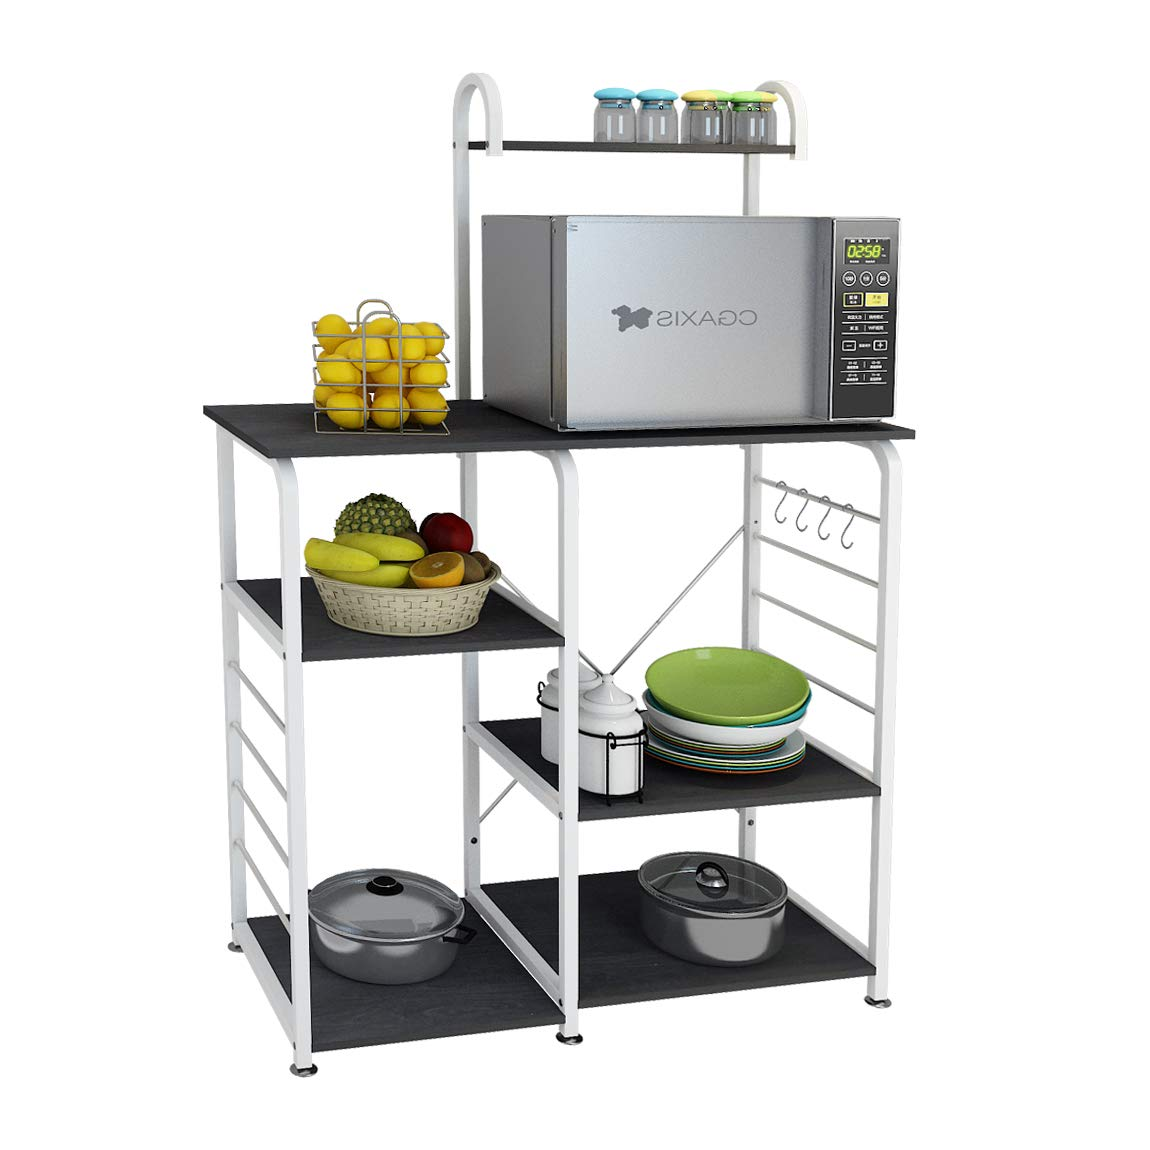 DlandHome Microwave Cart Stand 35.4 inches, Kitchen Utility Storage 3-Tierx4-Tier for Baker and Rack and Spice Rack Organizer Workstation Shelf, 172-B Black, 1 Pack by DlandHome